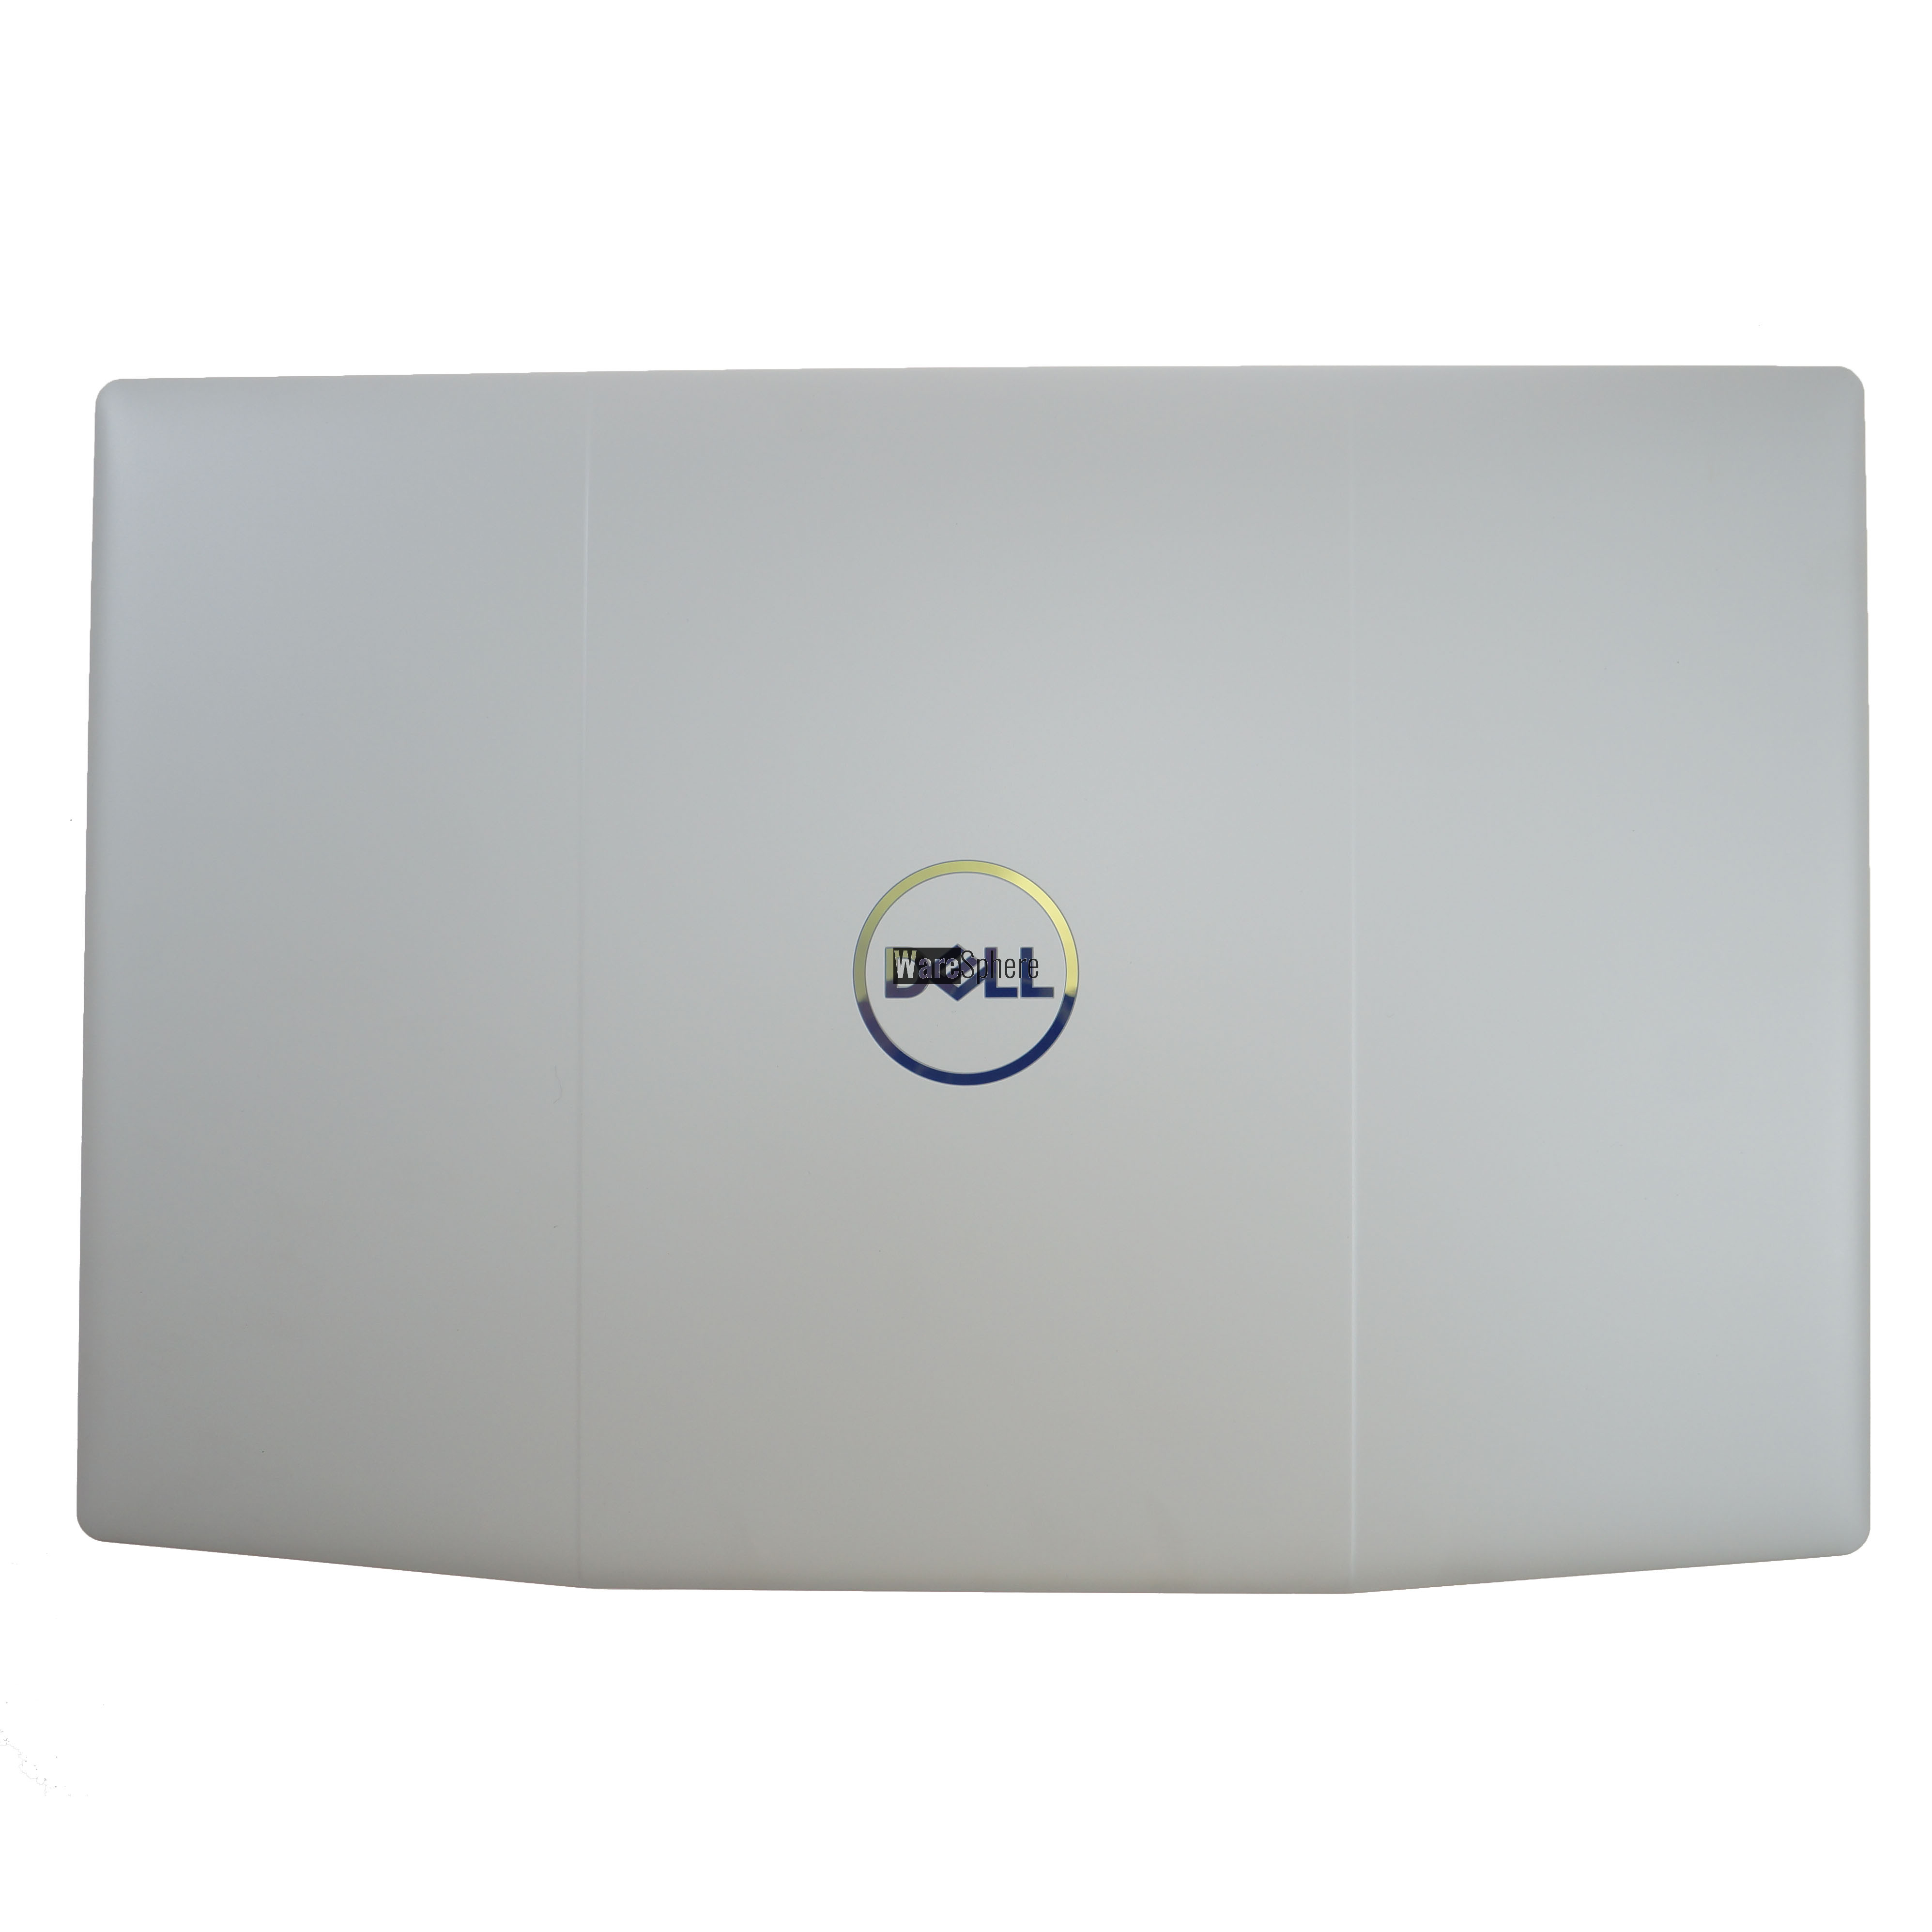 Lcd Back Cover For Dell Inspiron G3 15 3590 03HKFN 3HKFN White